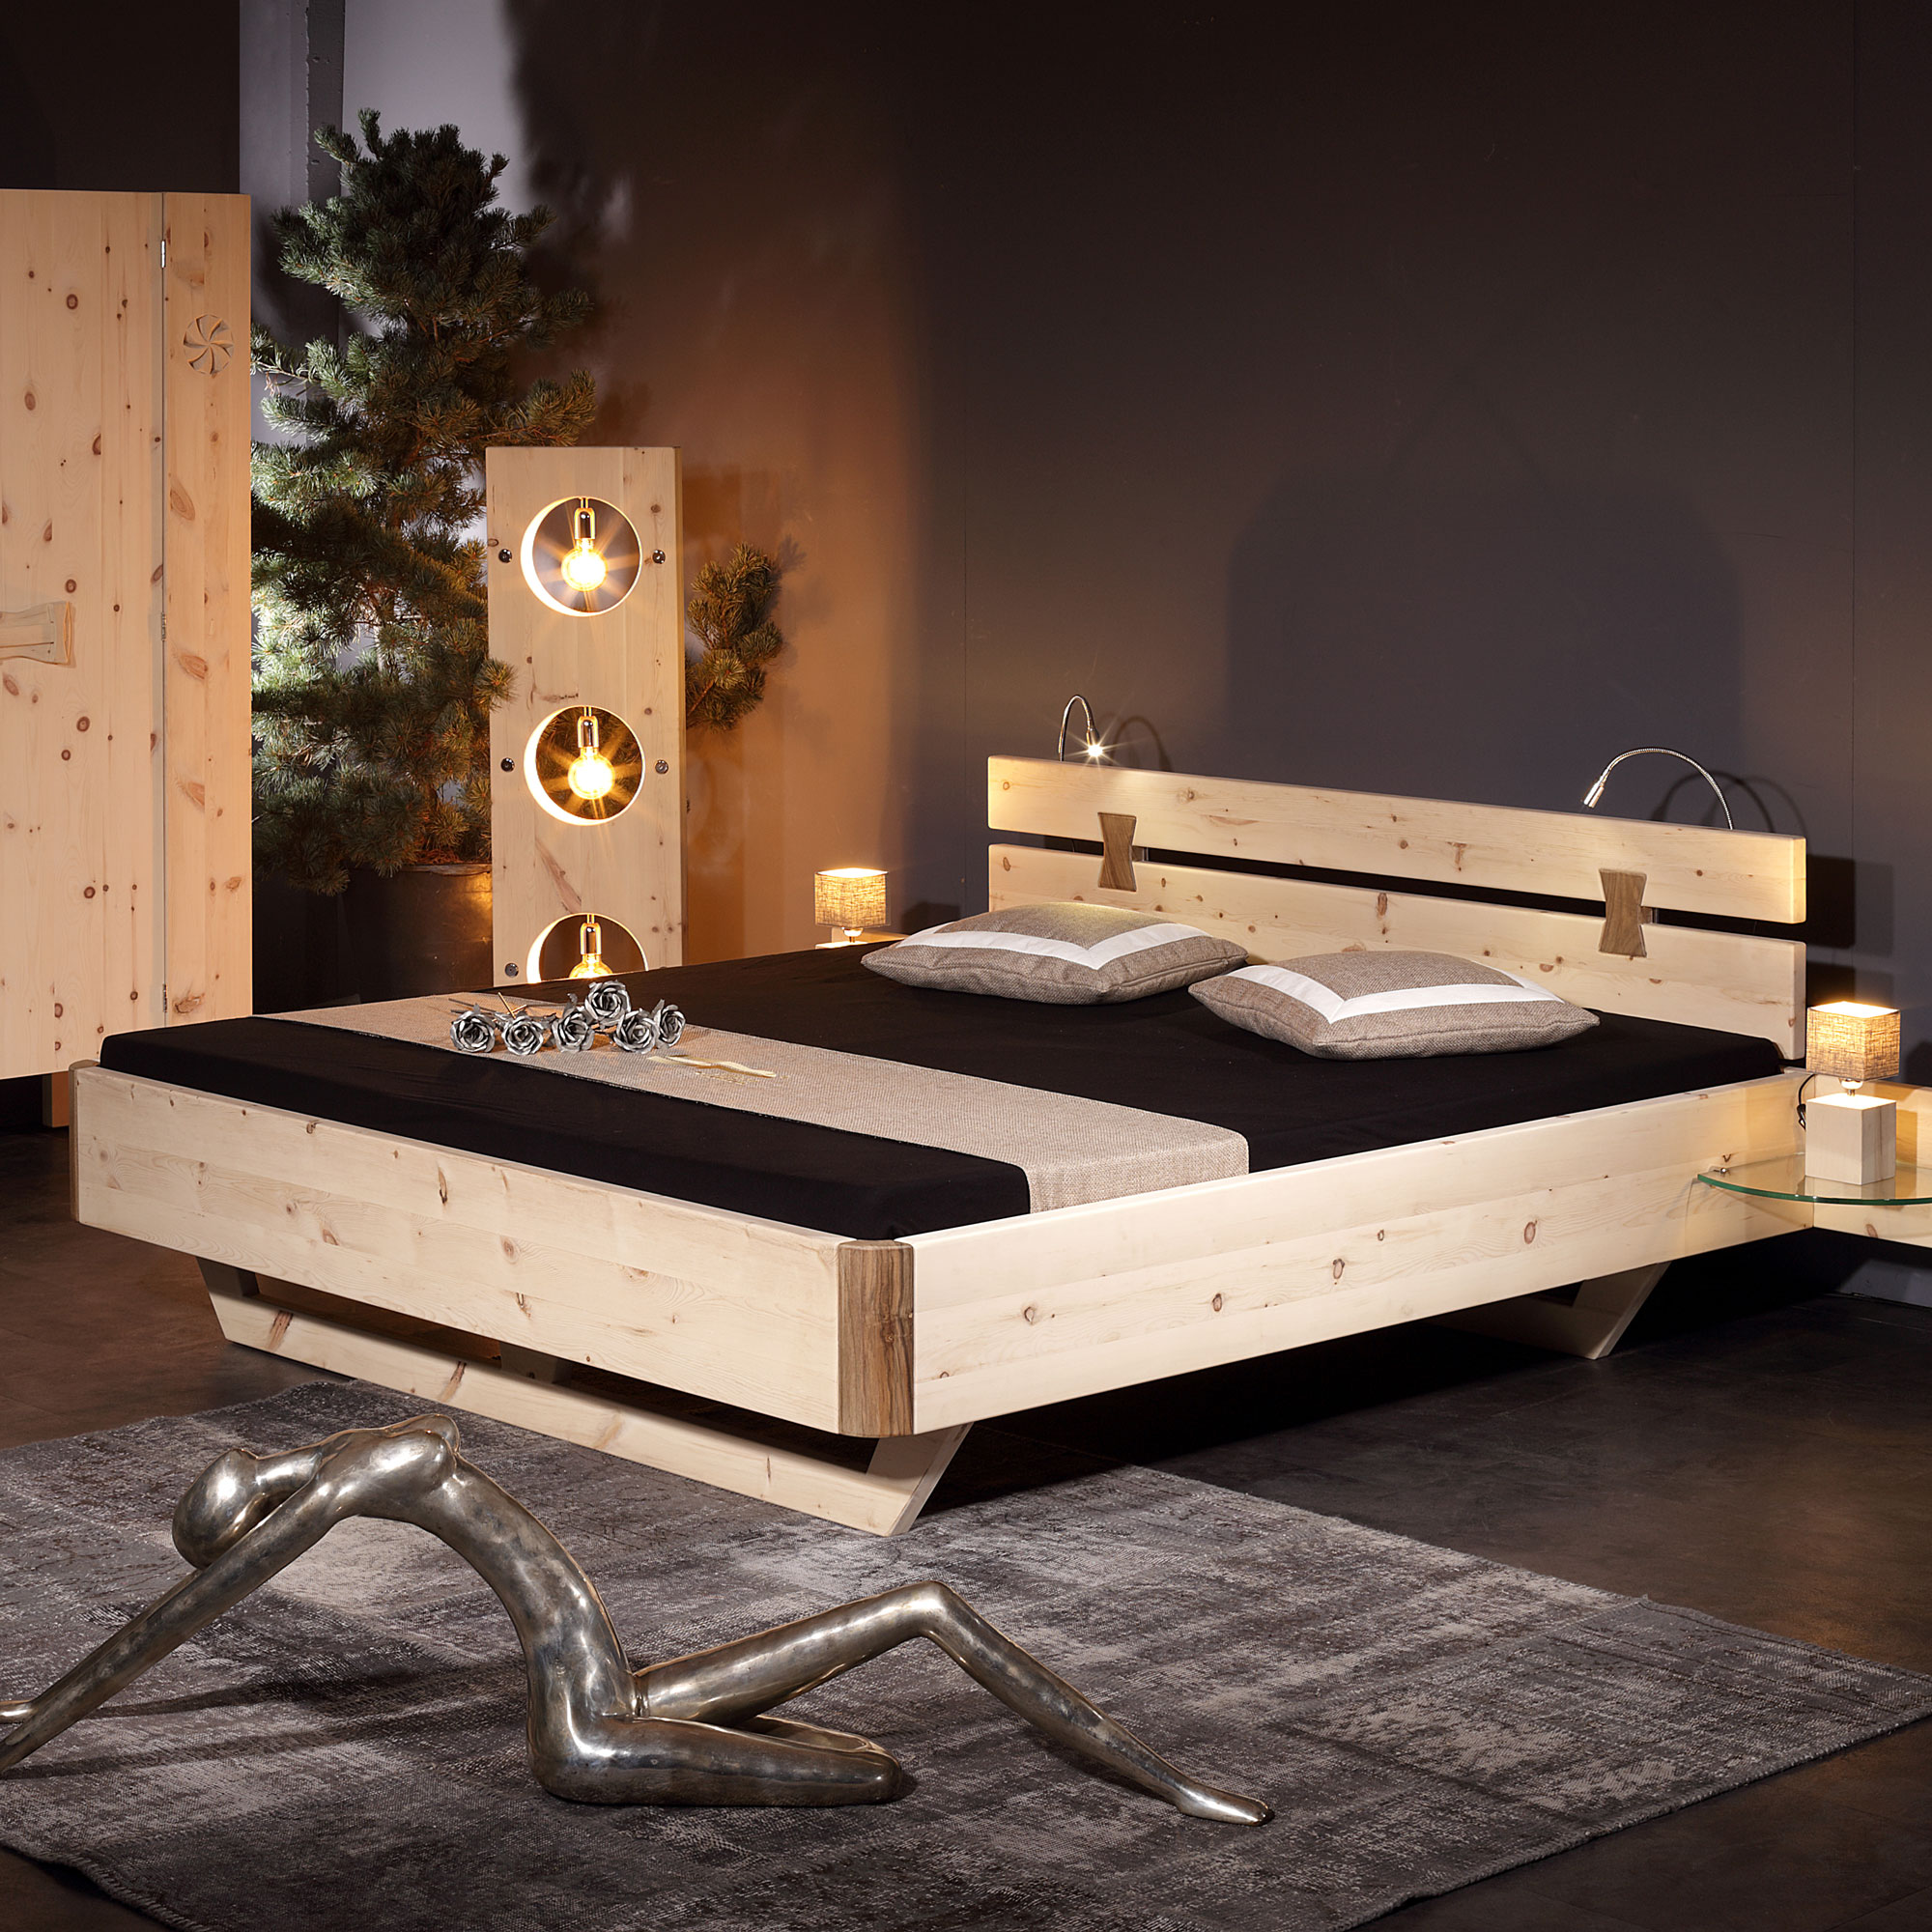 sprenger bett aus arve zirbe m bel b r ag. Black Bedroom Furniture Sets. Home Design Ideas